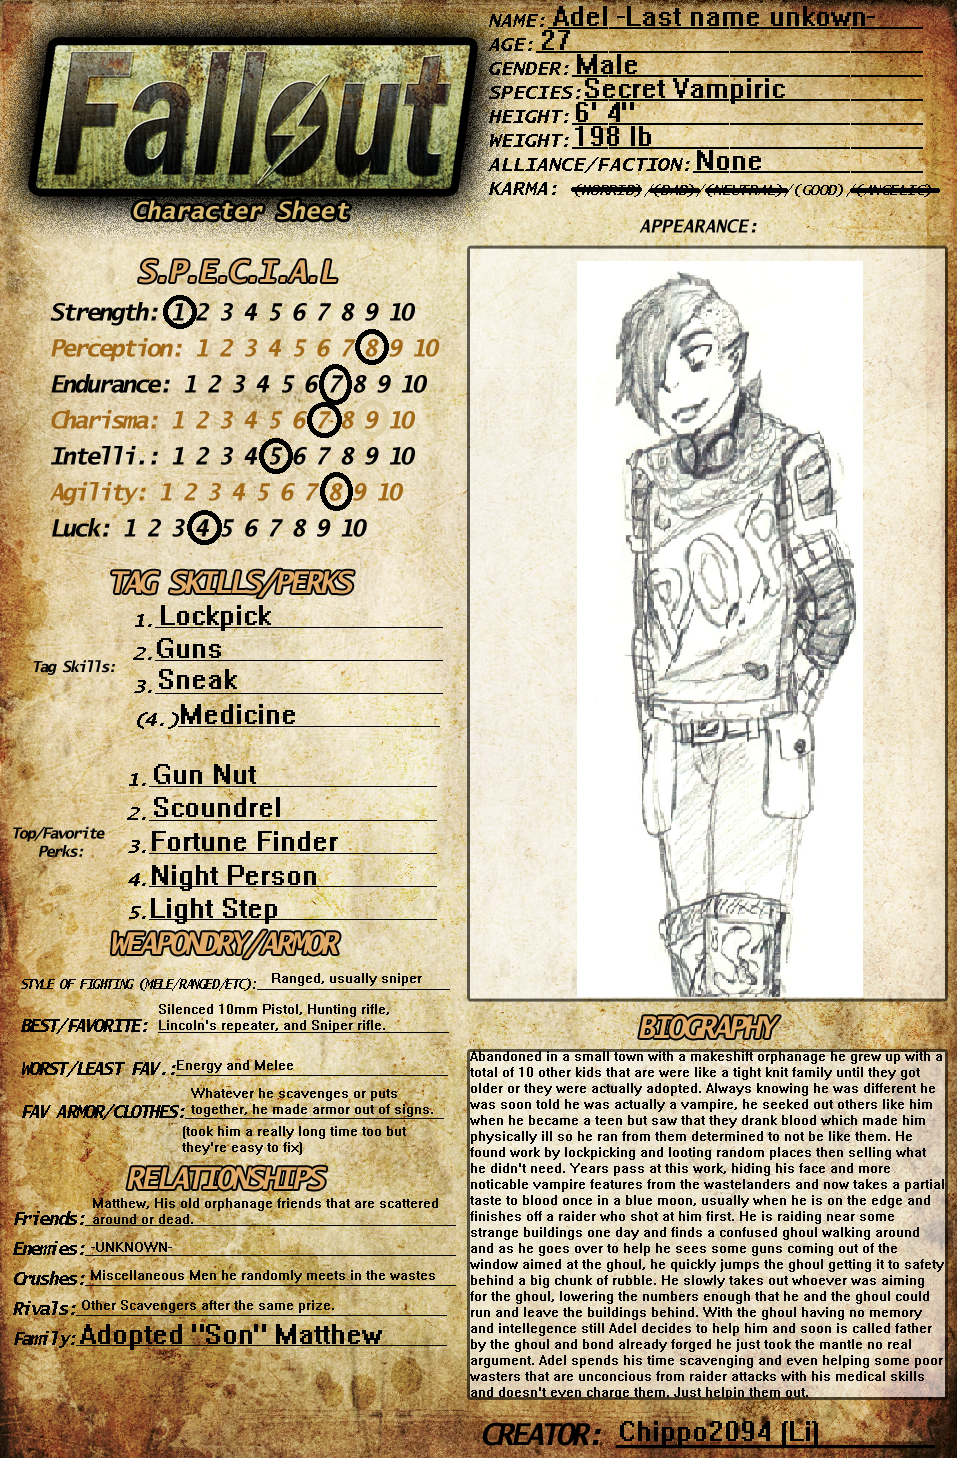 Fallout Character Sheet Meme (Adel) by Chippo2094 on DeviantArt